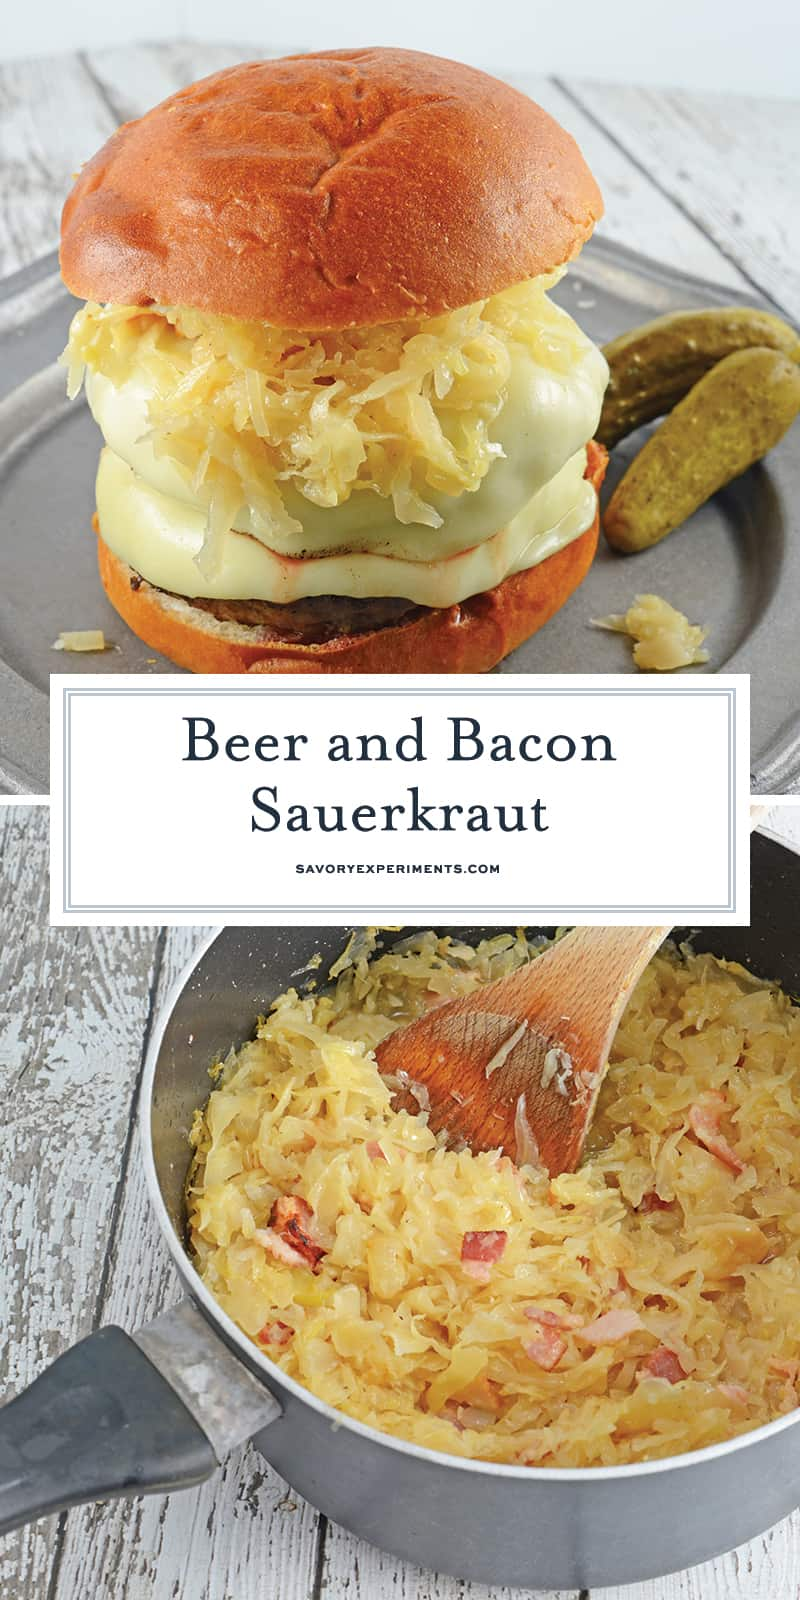 Beer and Bacon Sauerkraut is made from drained sauerkraut reconstituted with the flavors of beer and bacon. Top on hamburgers or hot dogs. #homemadesauerkraut #sauerkrautrecipe www.savoryexperiments.com